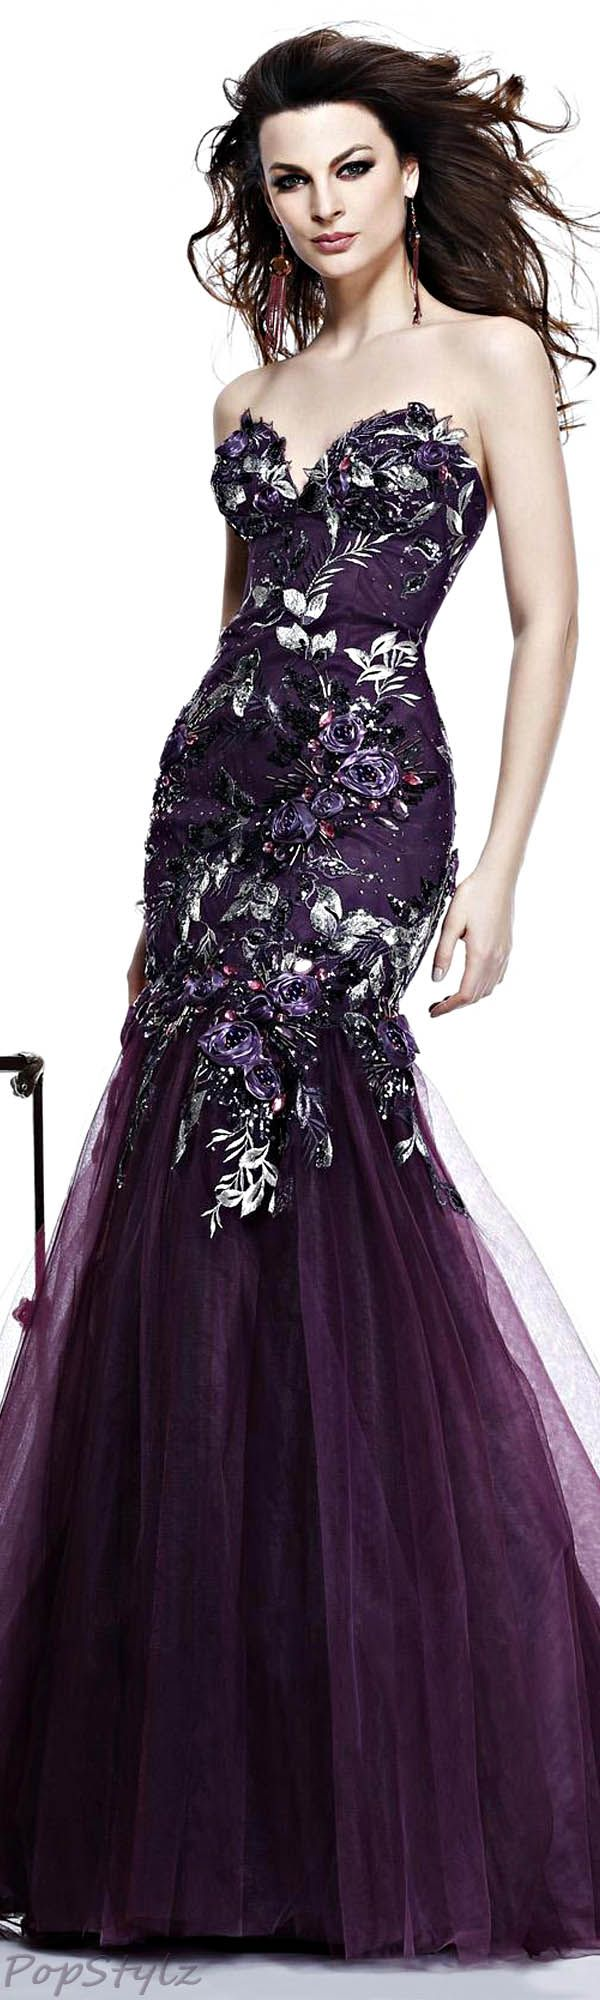 Tarik Ediz 2014 Evening Gown--the color, the cut, I'd love to see this on Selena Gomez..with her hair down, and dramatic eyes...nude lips...and dramatic earrings !